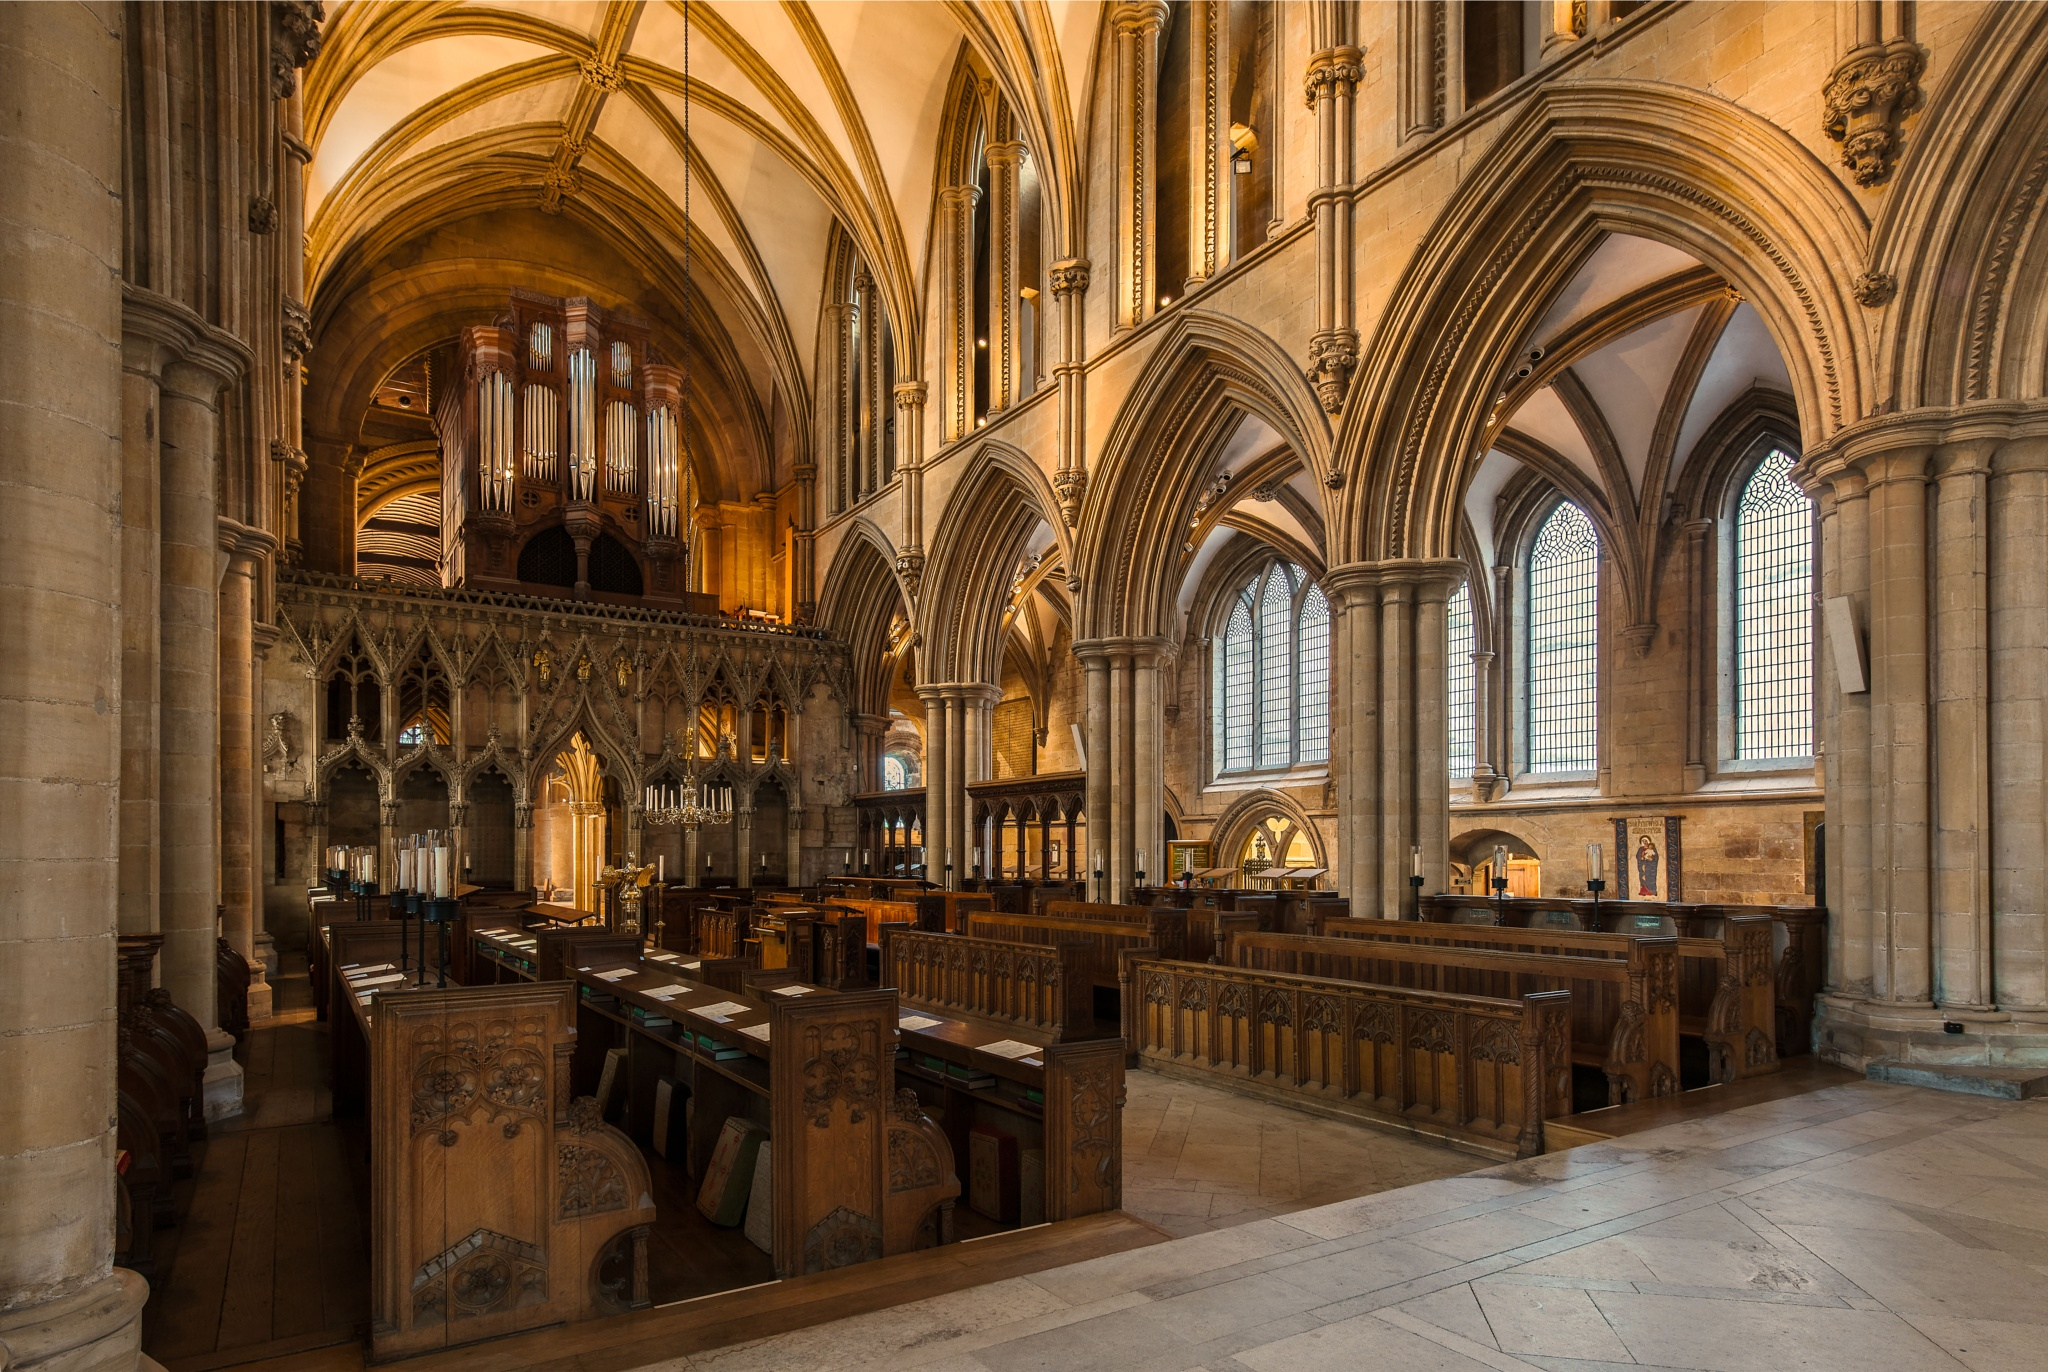 Inside the Southwell Minster by Harry Ward